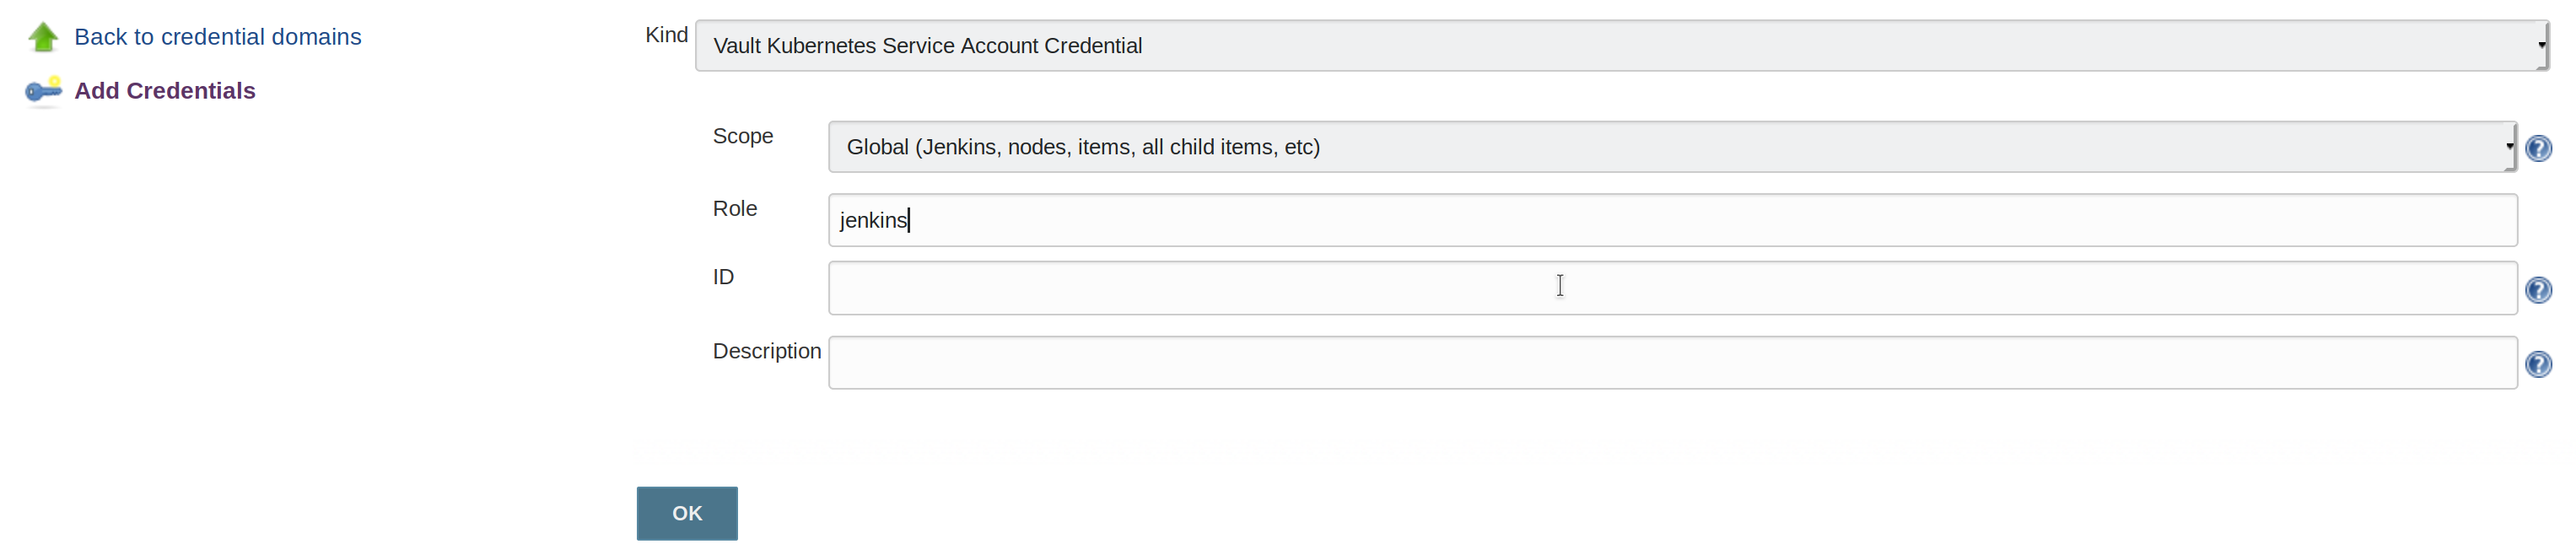 Kubernetes Credential